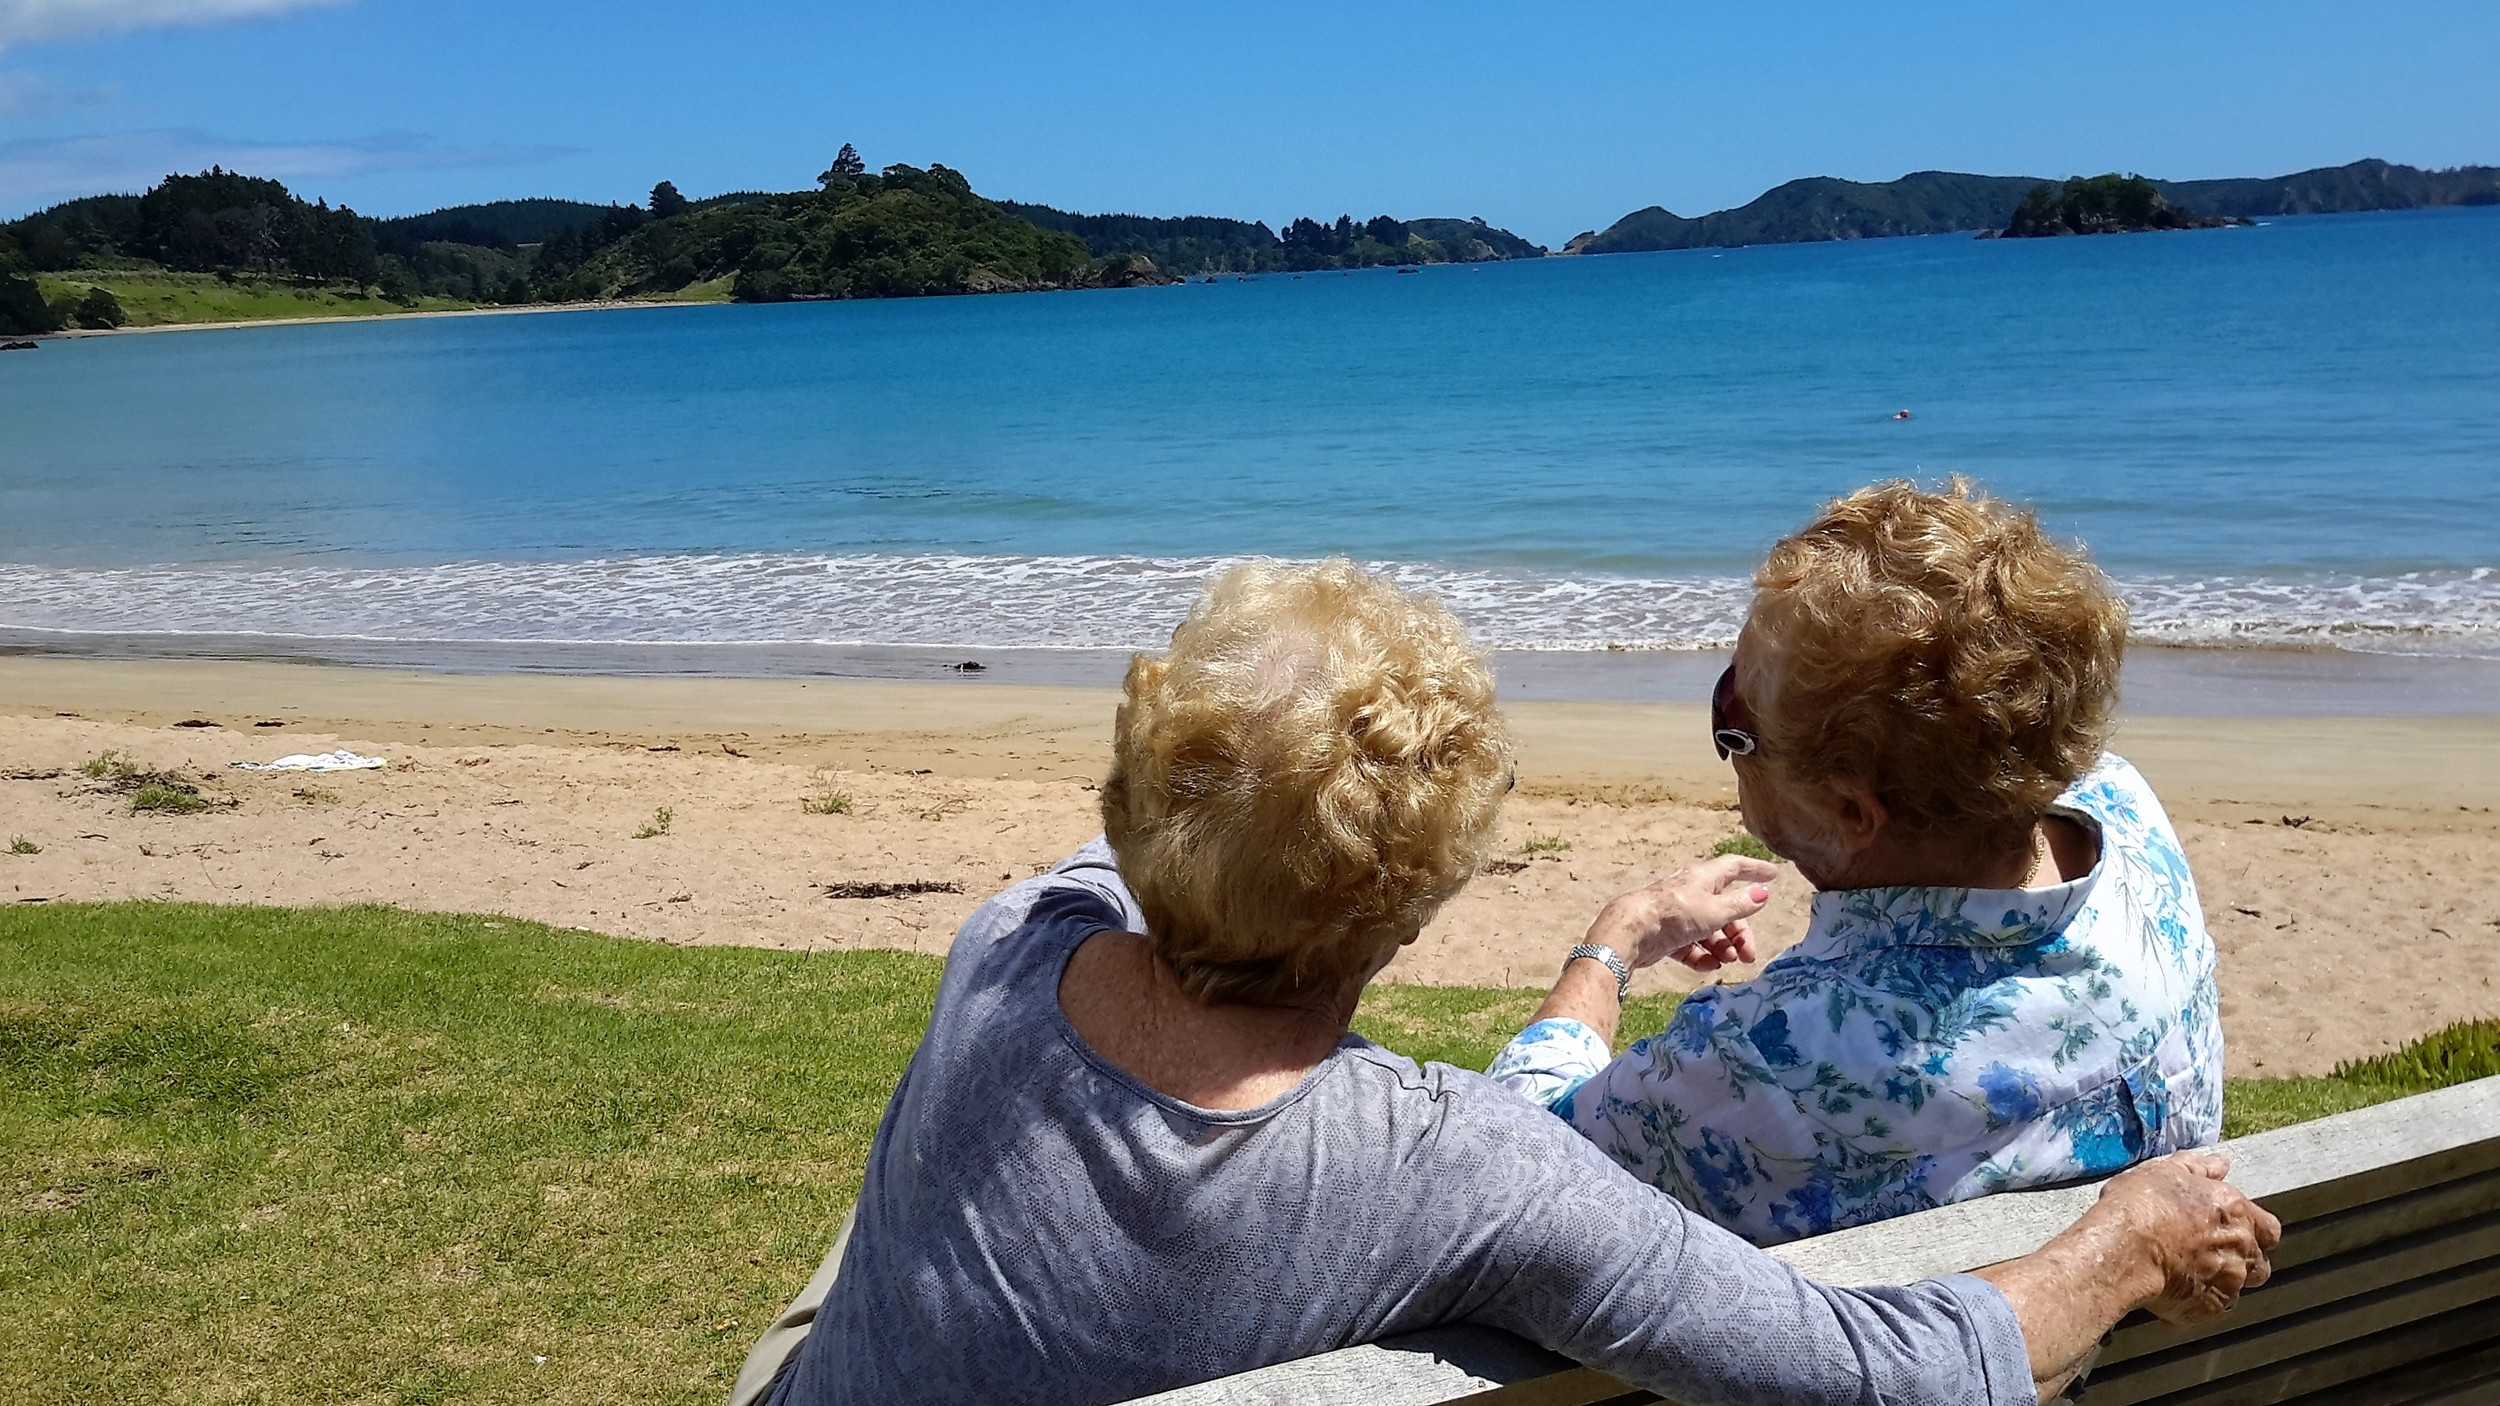 I have just taken my beautiful Mum and her cousin Rosa, who was over from Australia, for a whirlwind tour of Northland. They are both 90ish and really enjoyed the trip.They both have a great attitude to life, and if I have their genes, I will be very happy.